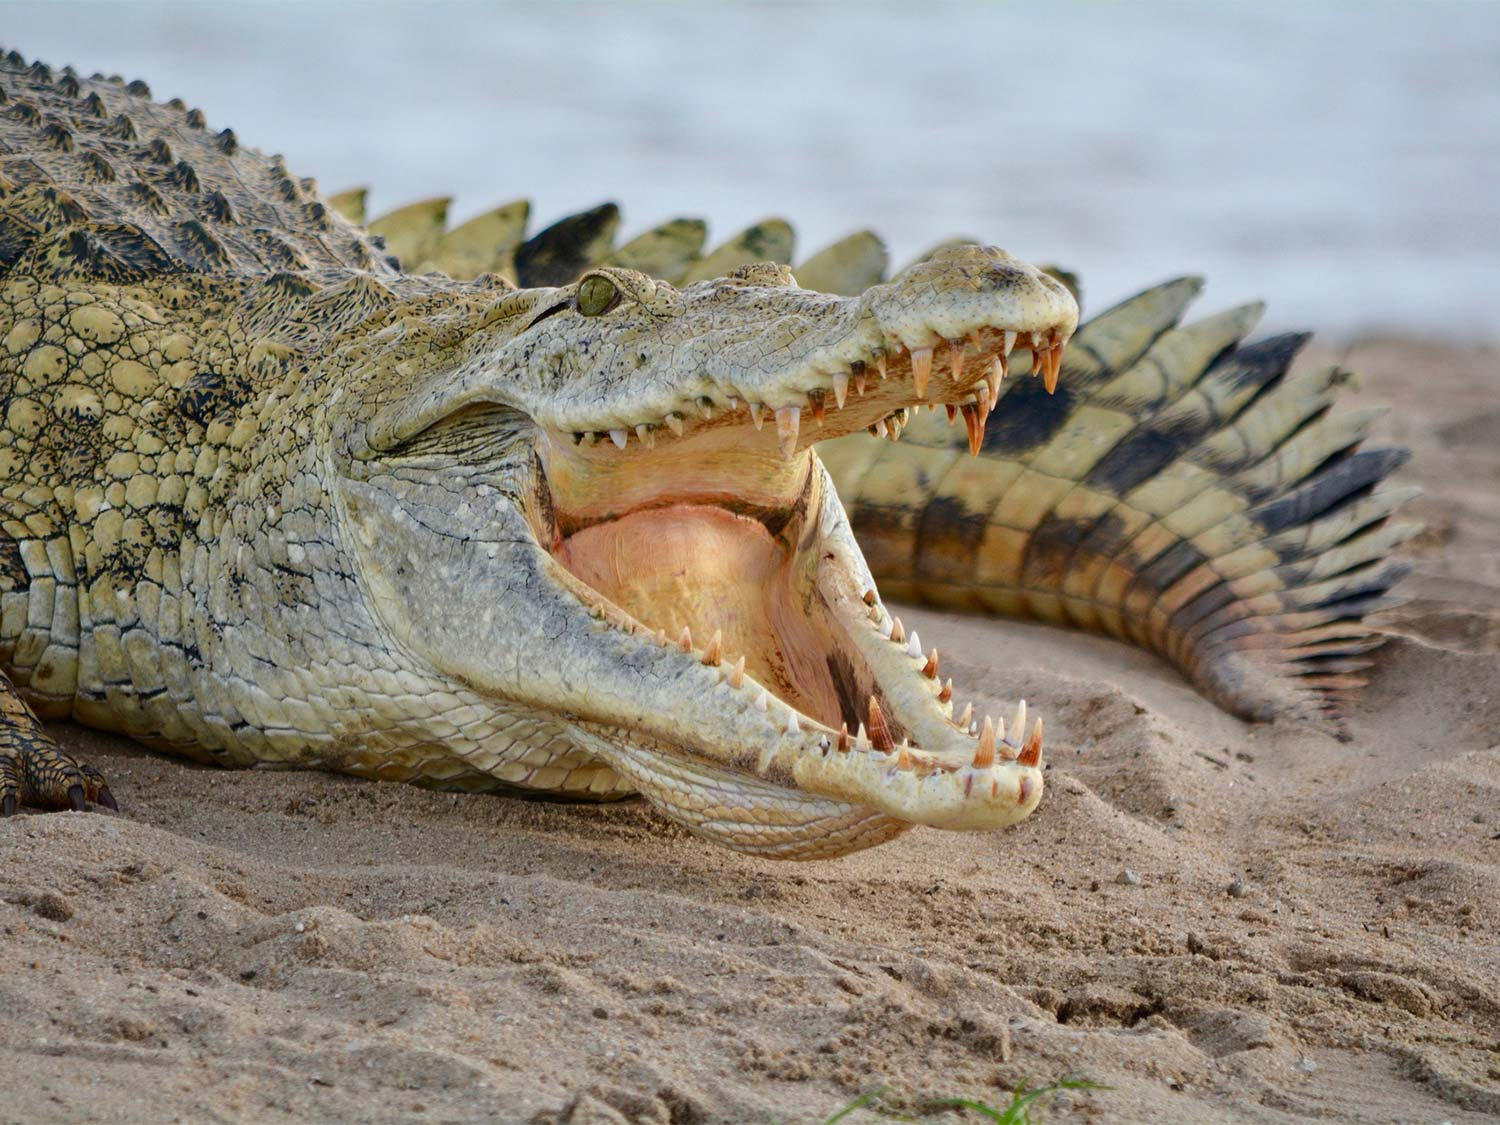 A large crocodile with its mouth open on a sandbar.